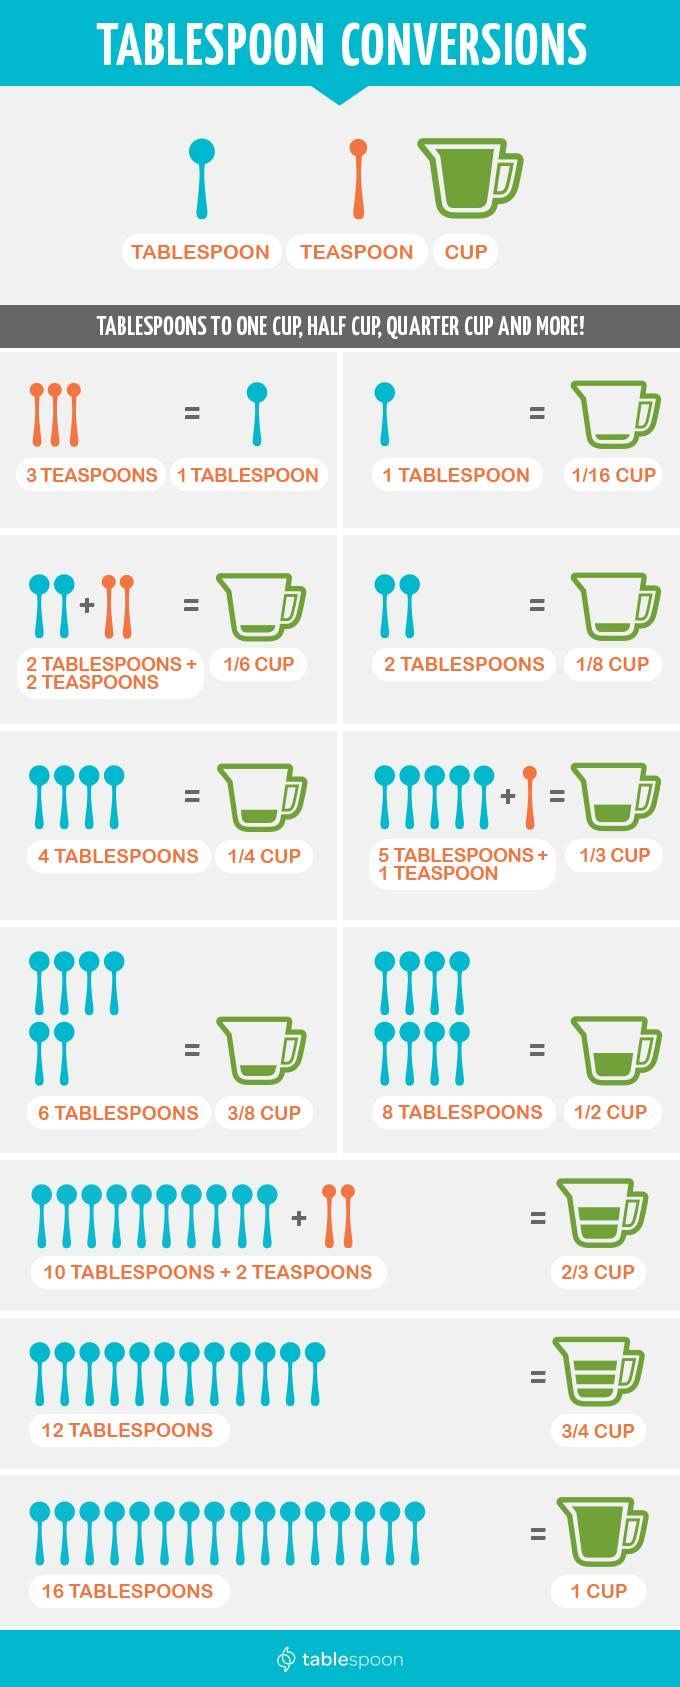 Measurement conversions tablespoon teaspoon and cups wet and tablespoon conversion chart very useful nvjuhfo Image collections